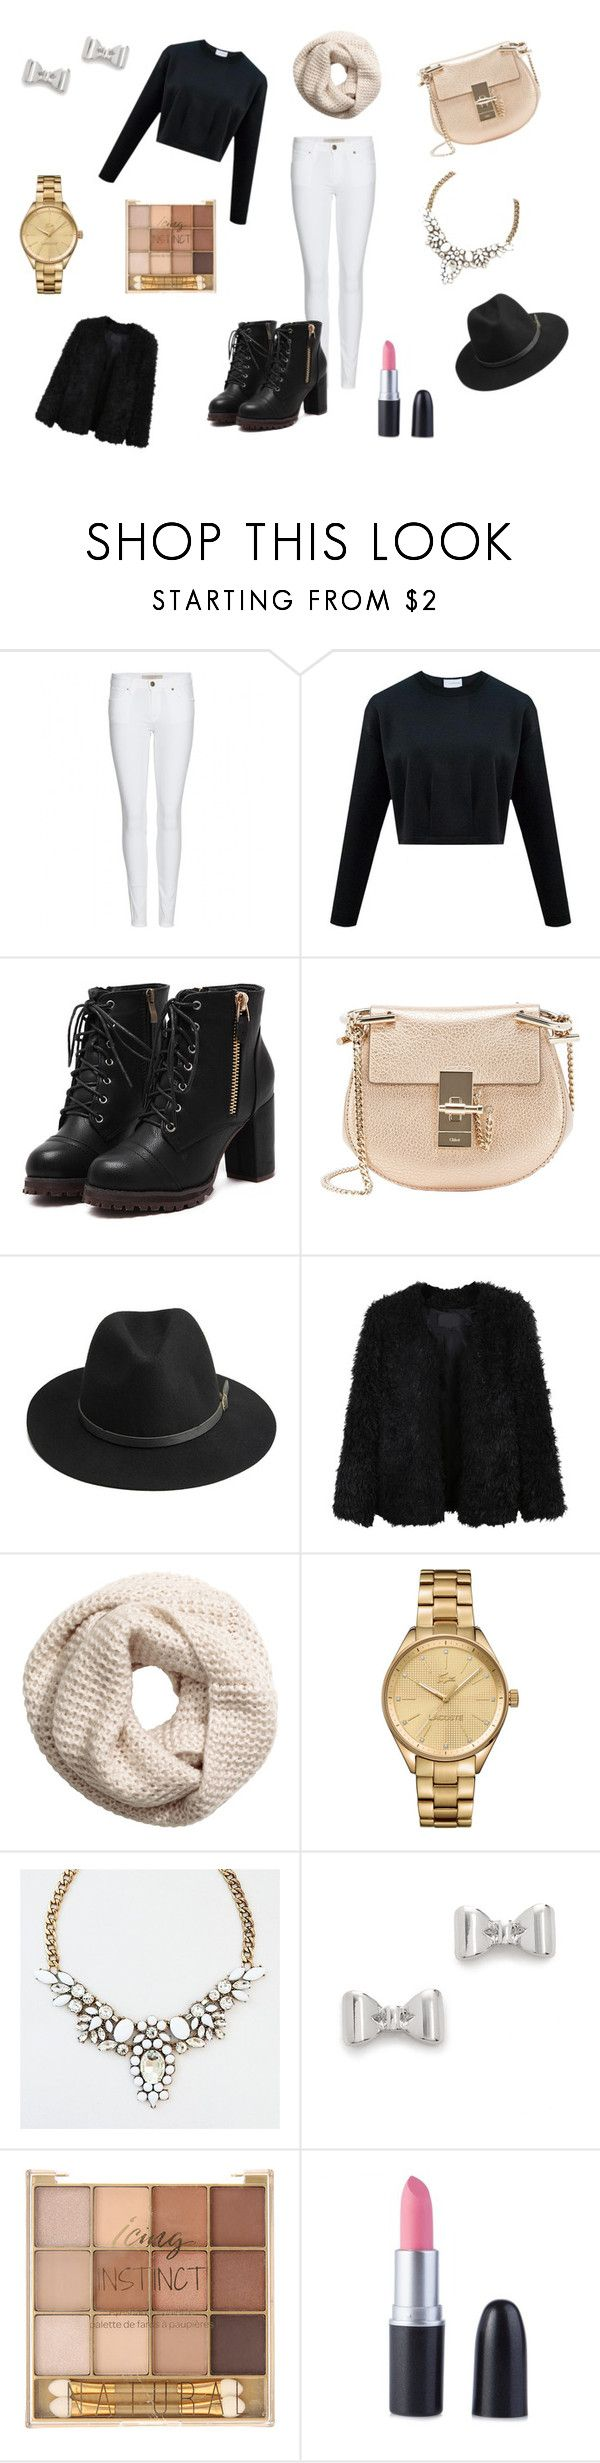 """""""louly live"""" by dagusia112 on Polyvore featuring moda, Burberry, Chloé, BeckSöndergaard, LE3NO, H&M, Lacoste i Marc by Marc Jacobs"""